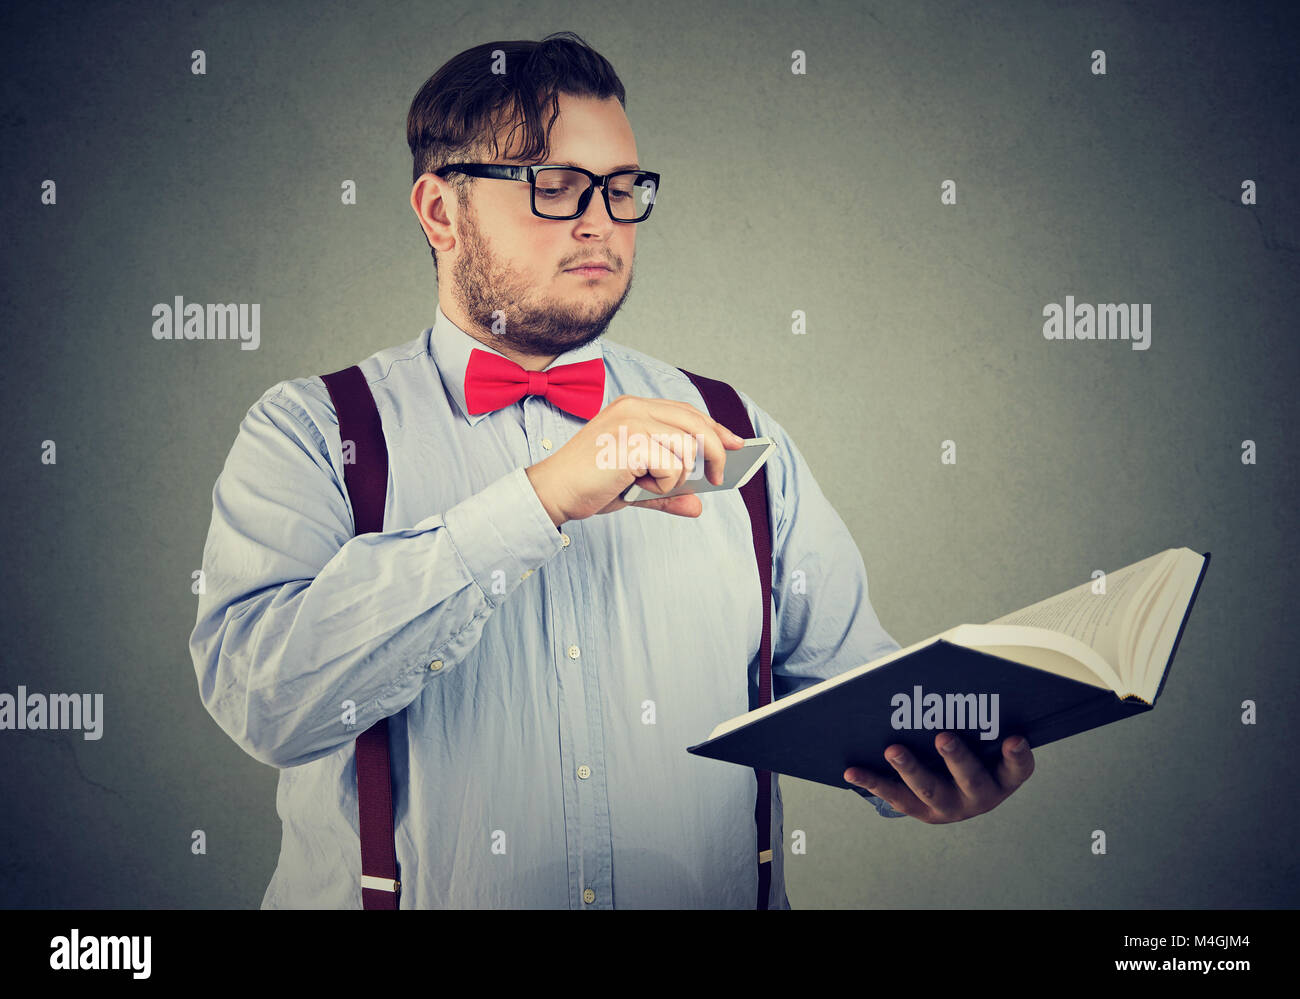 Smart man in eyeglasses holding and taking photo of precious information with smartphone. - Stock Image